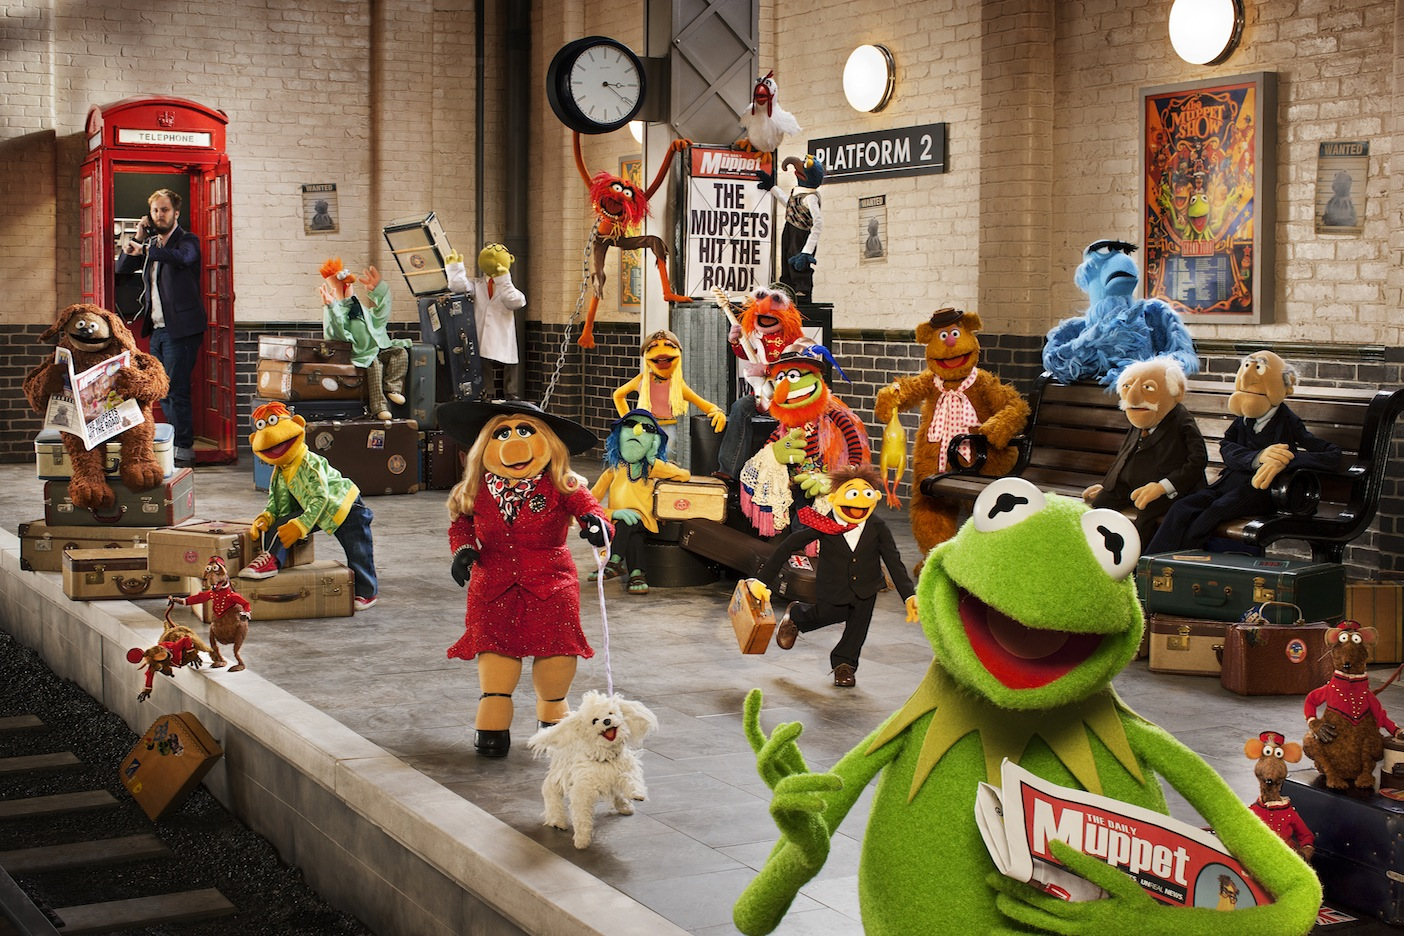 The Muppet Show Bakgrund And Bakgrund - Muppets Again , HD Wallpaper & Backgrounds